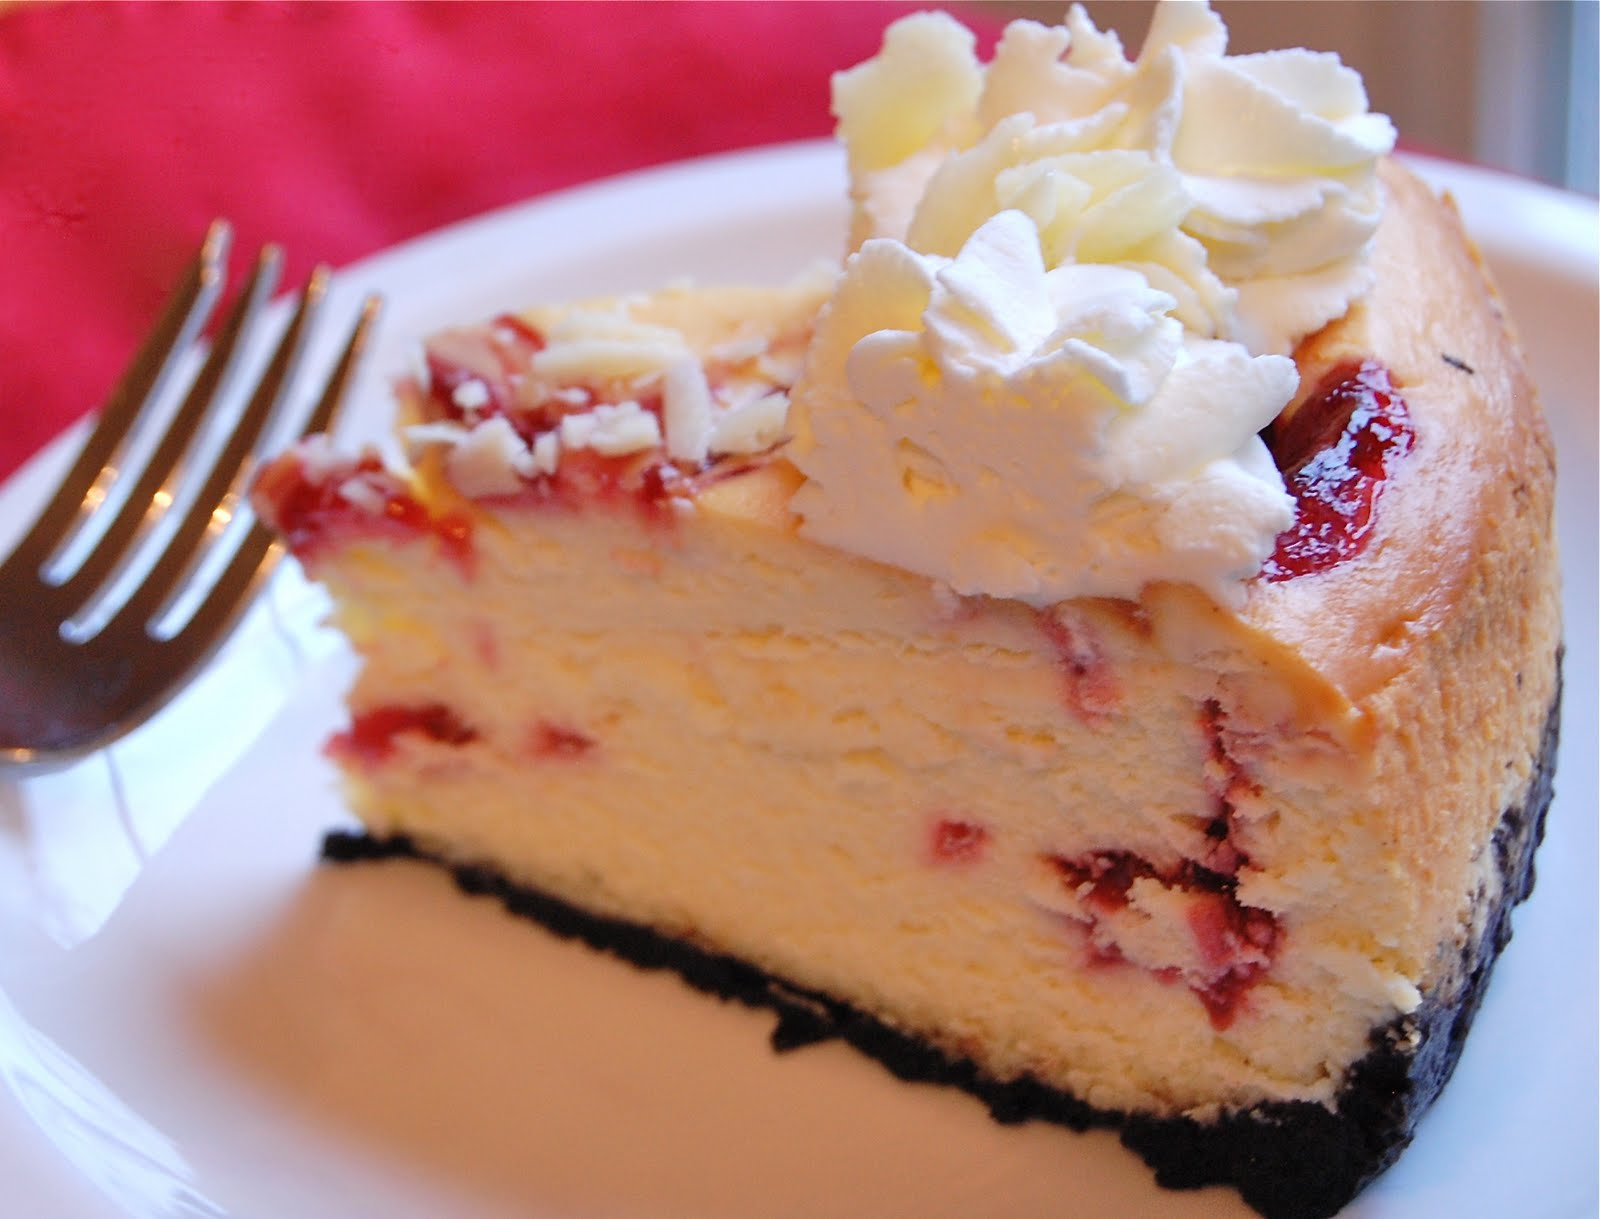 ... : Cheesecake Factory's White Chocolate Raspberry Truffle Cheesecake